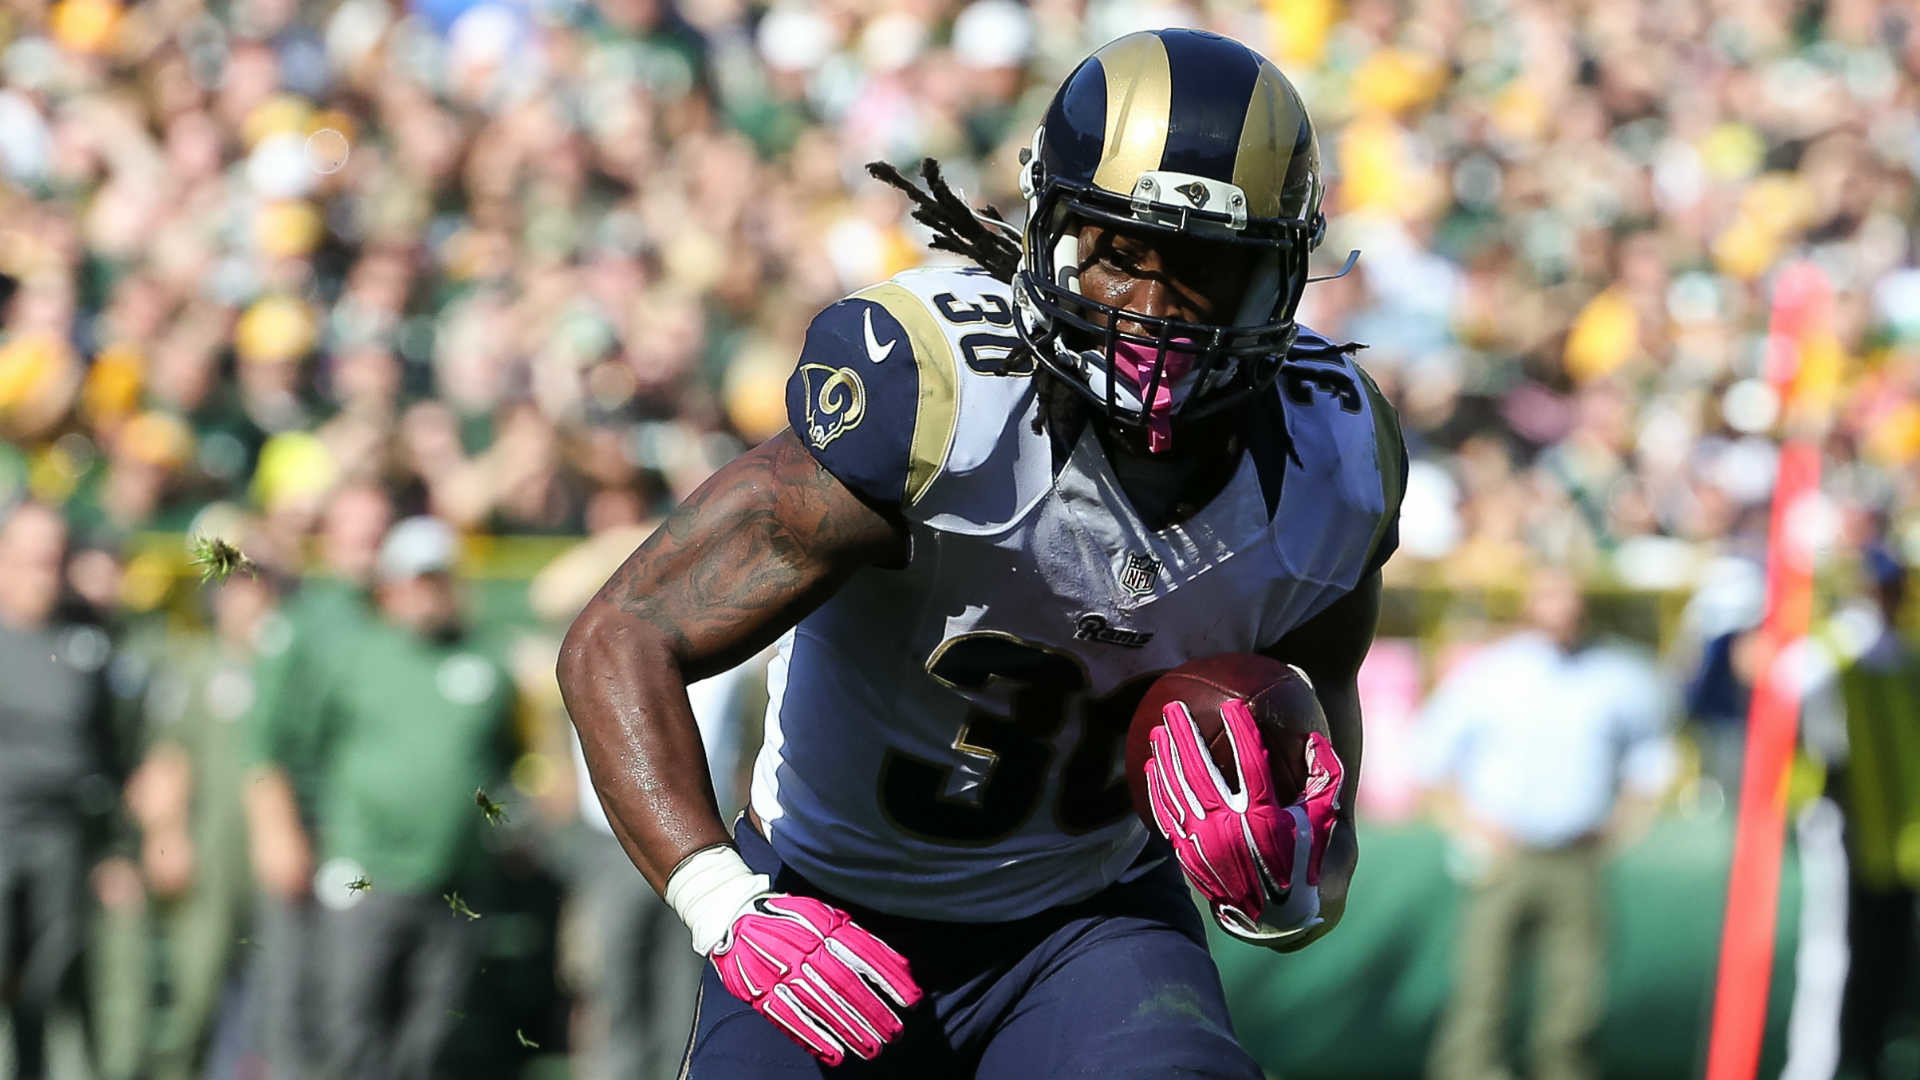 Todd Gurley Wallpaper Rams 86 Images